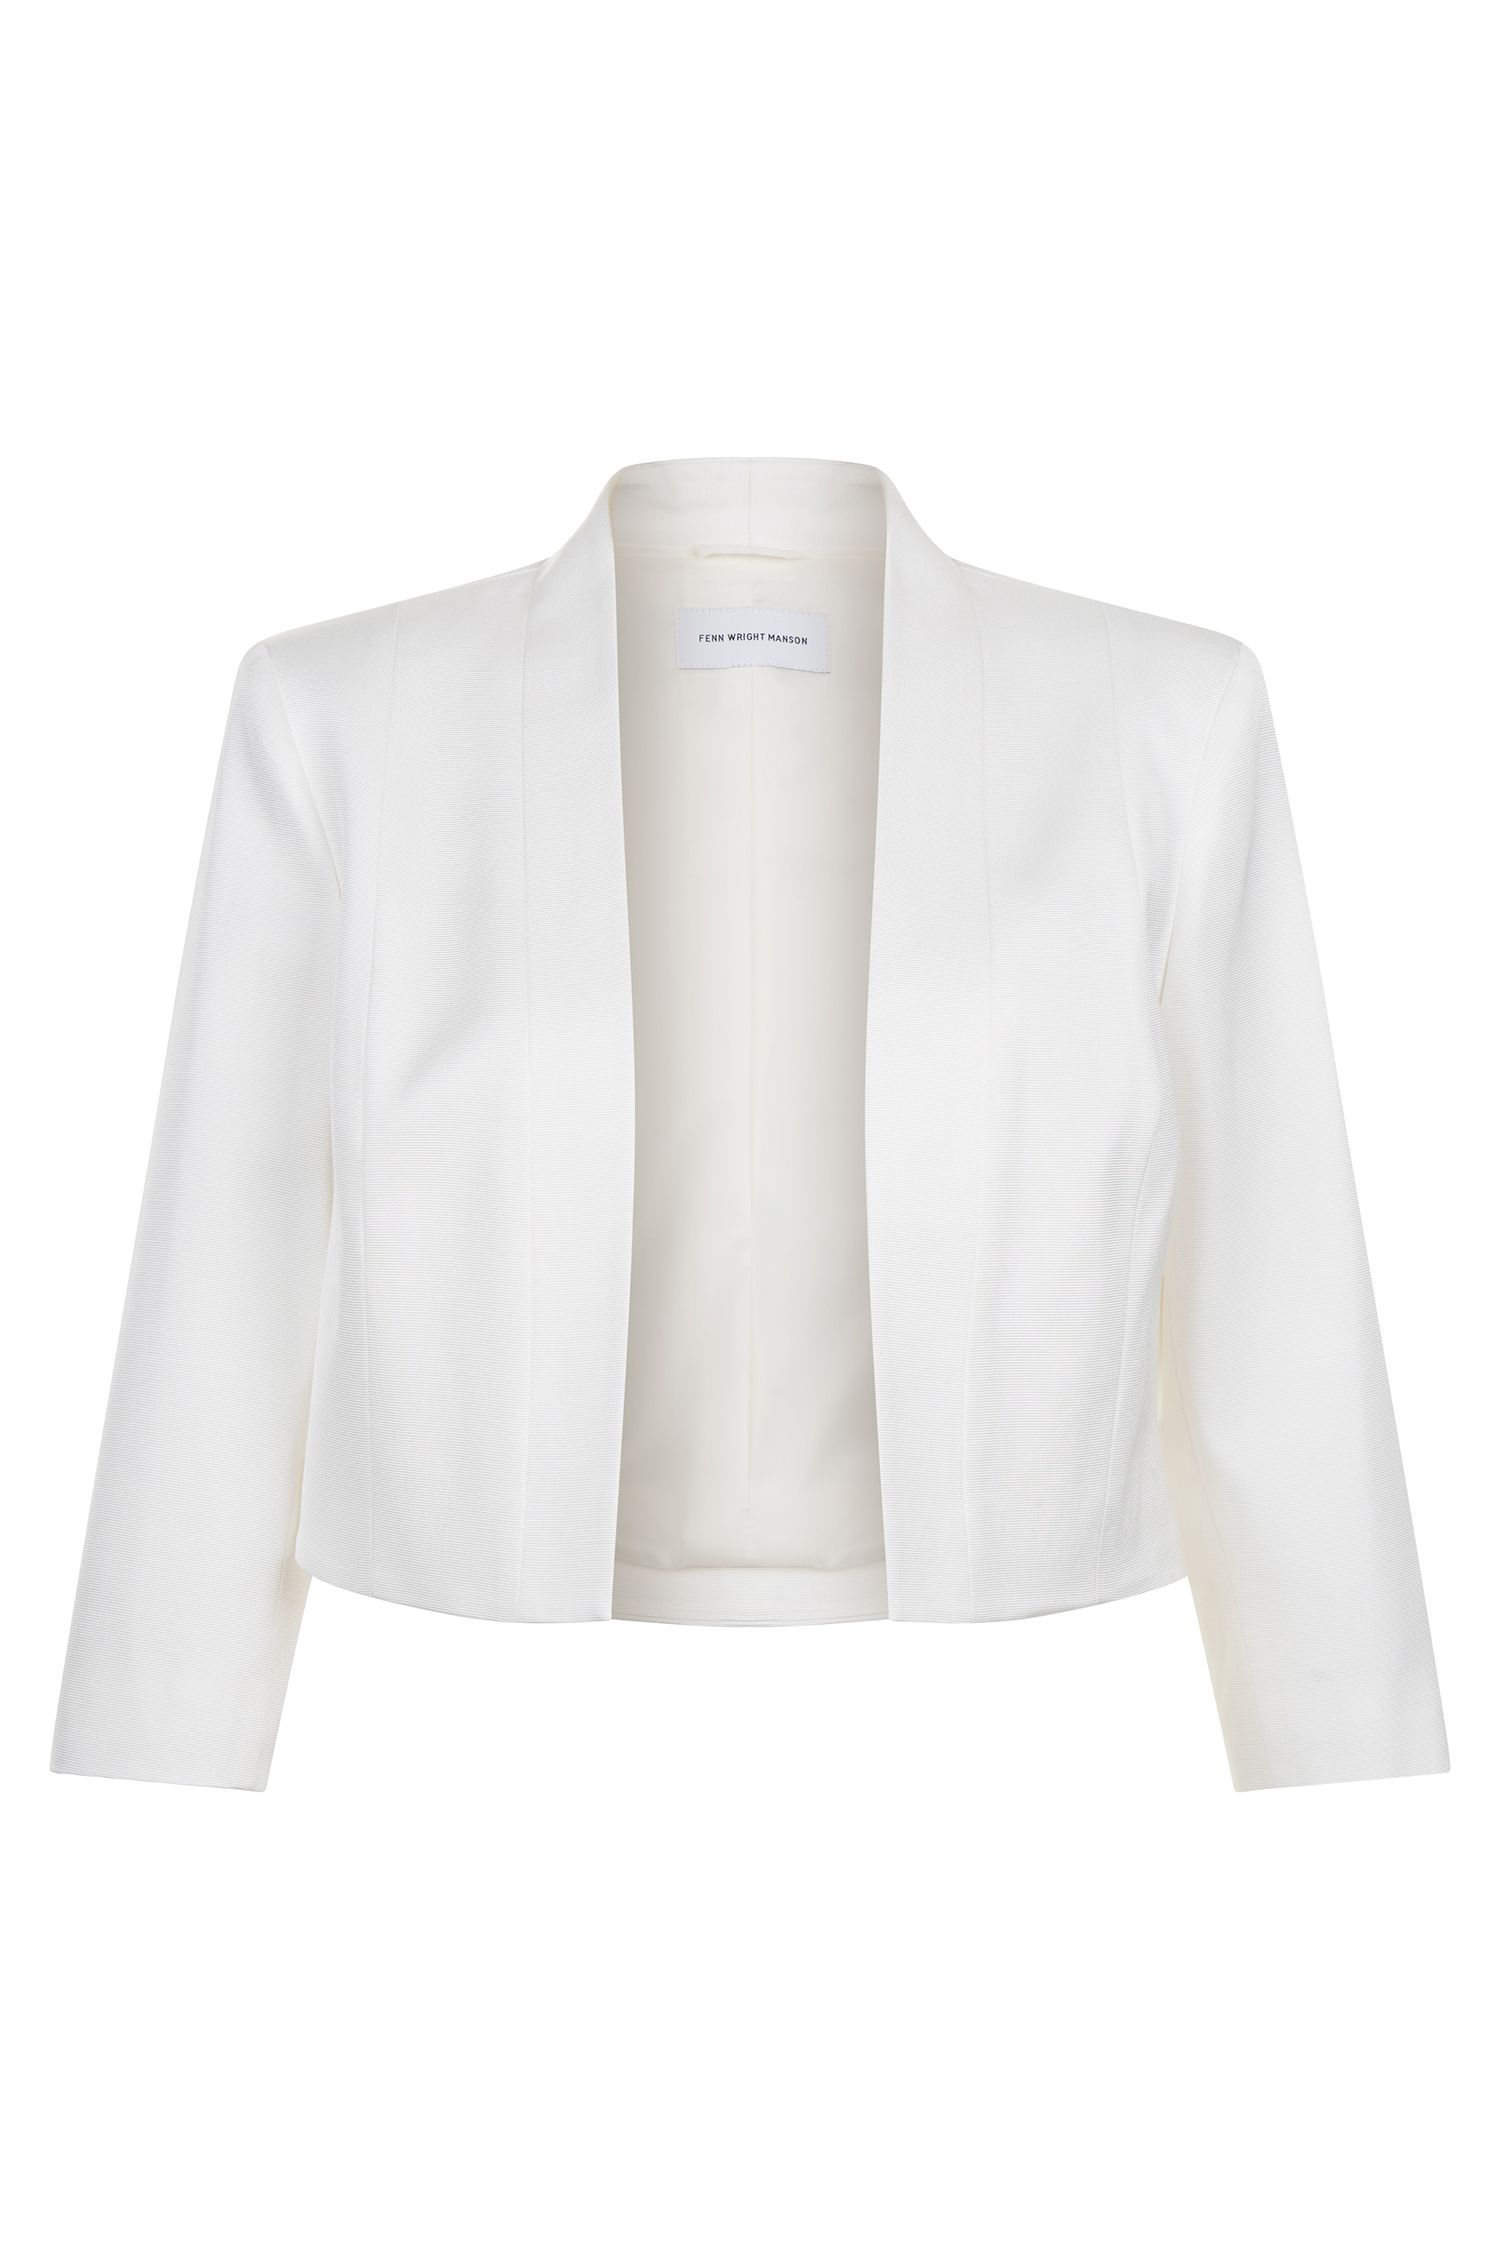 Fenn Wright Manson Lichtenstein Jacket, White